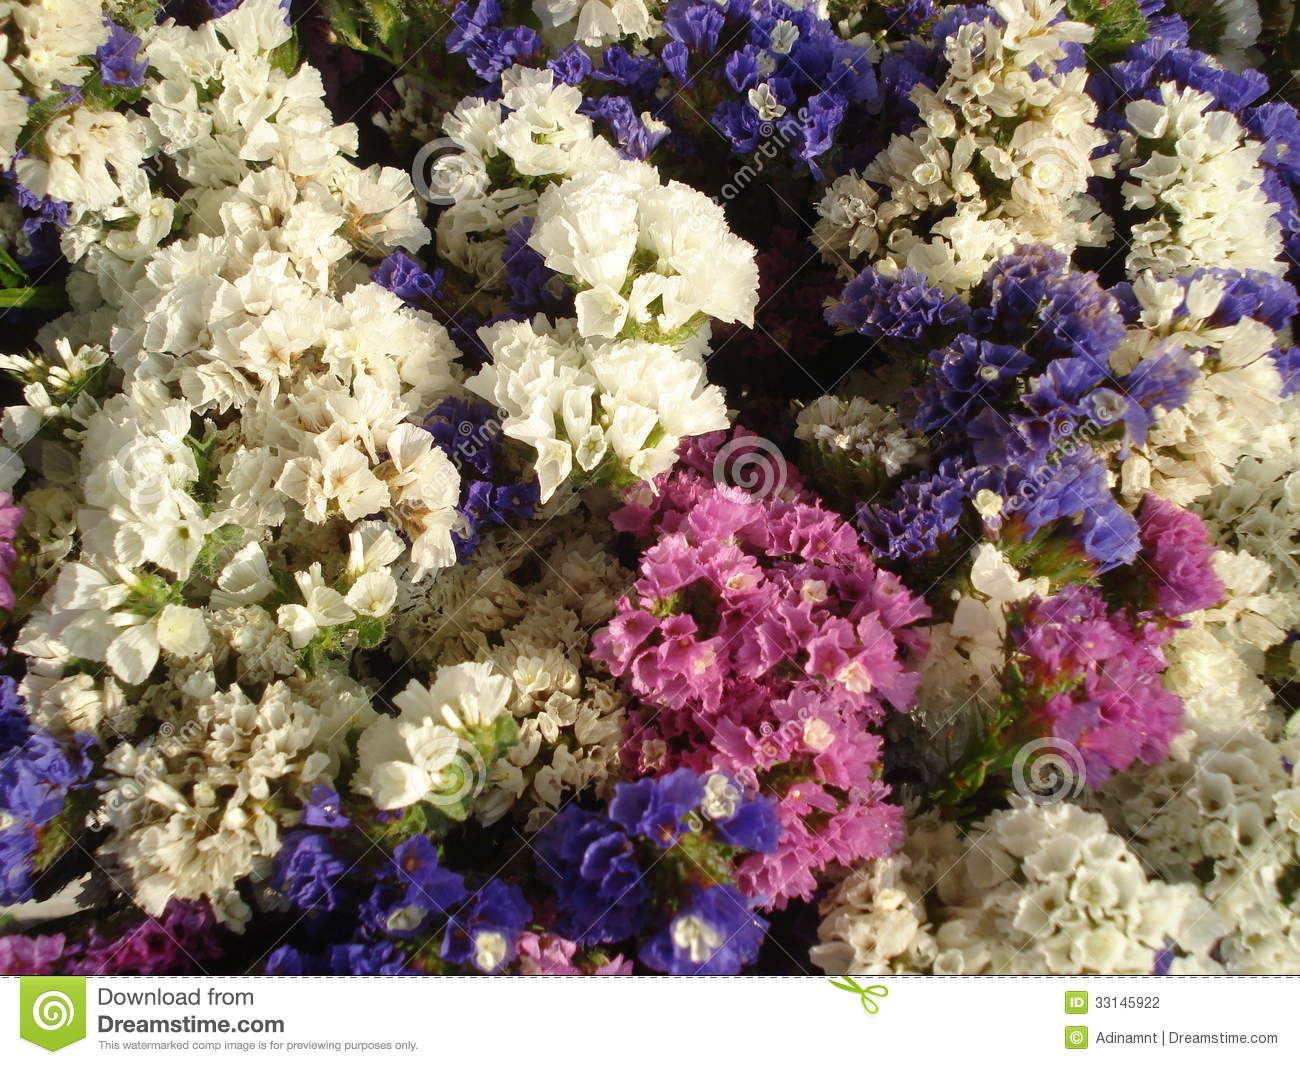 Annual statice limonium stock photo image of backgrounds 33145922 the annual statice limonium is a hardy flowering plant suitable for gardens containers groundcover but also used in dried flowers arrangements and izmirmasajfo